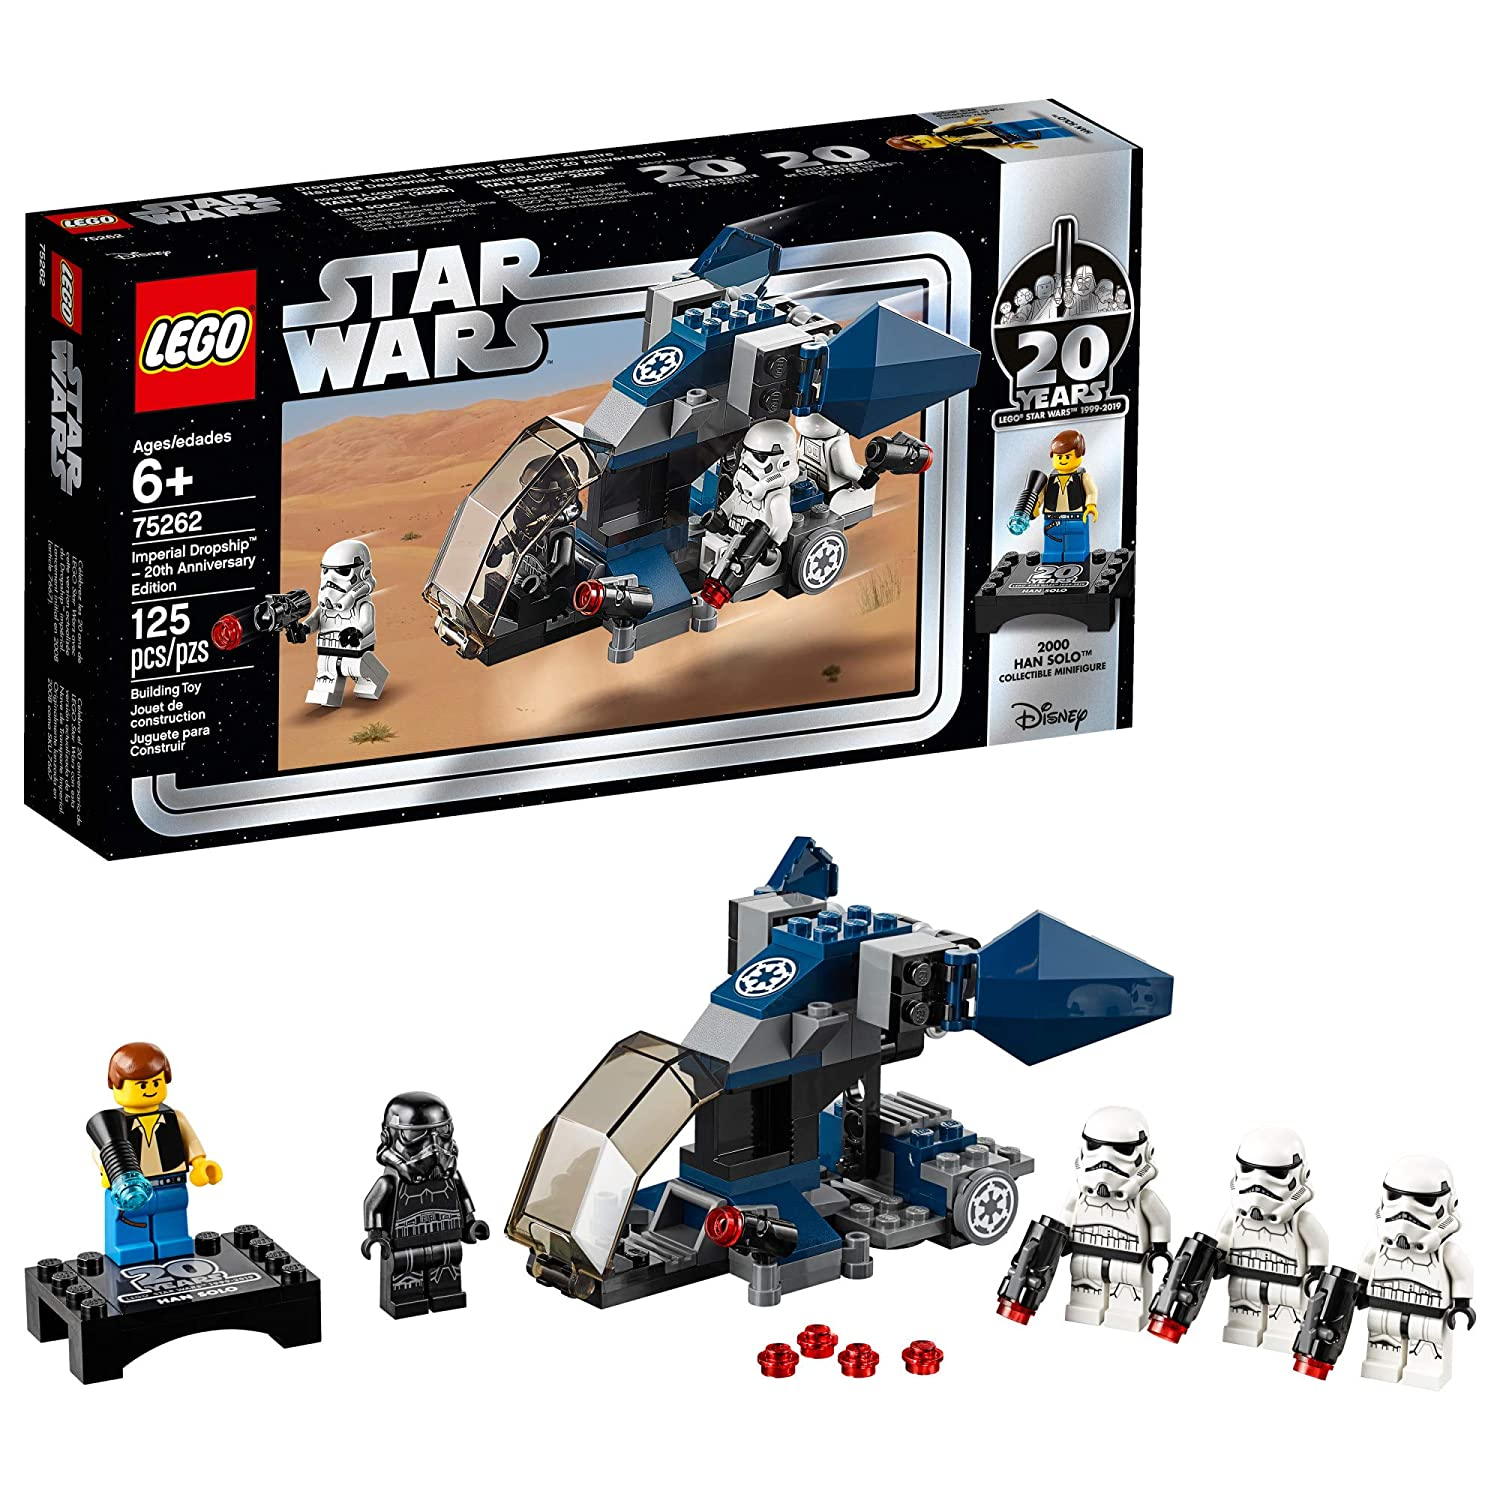 LEGO Star Wars Imperial Dropship – 20th Anniversary Edition 75262 Building  Kit (125 Piece)